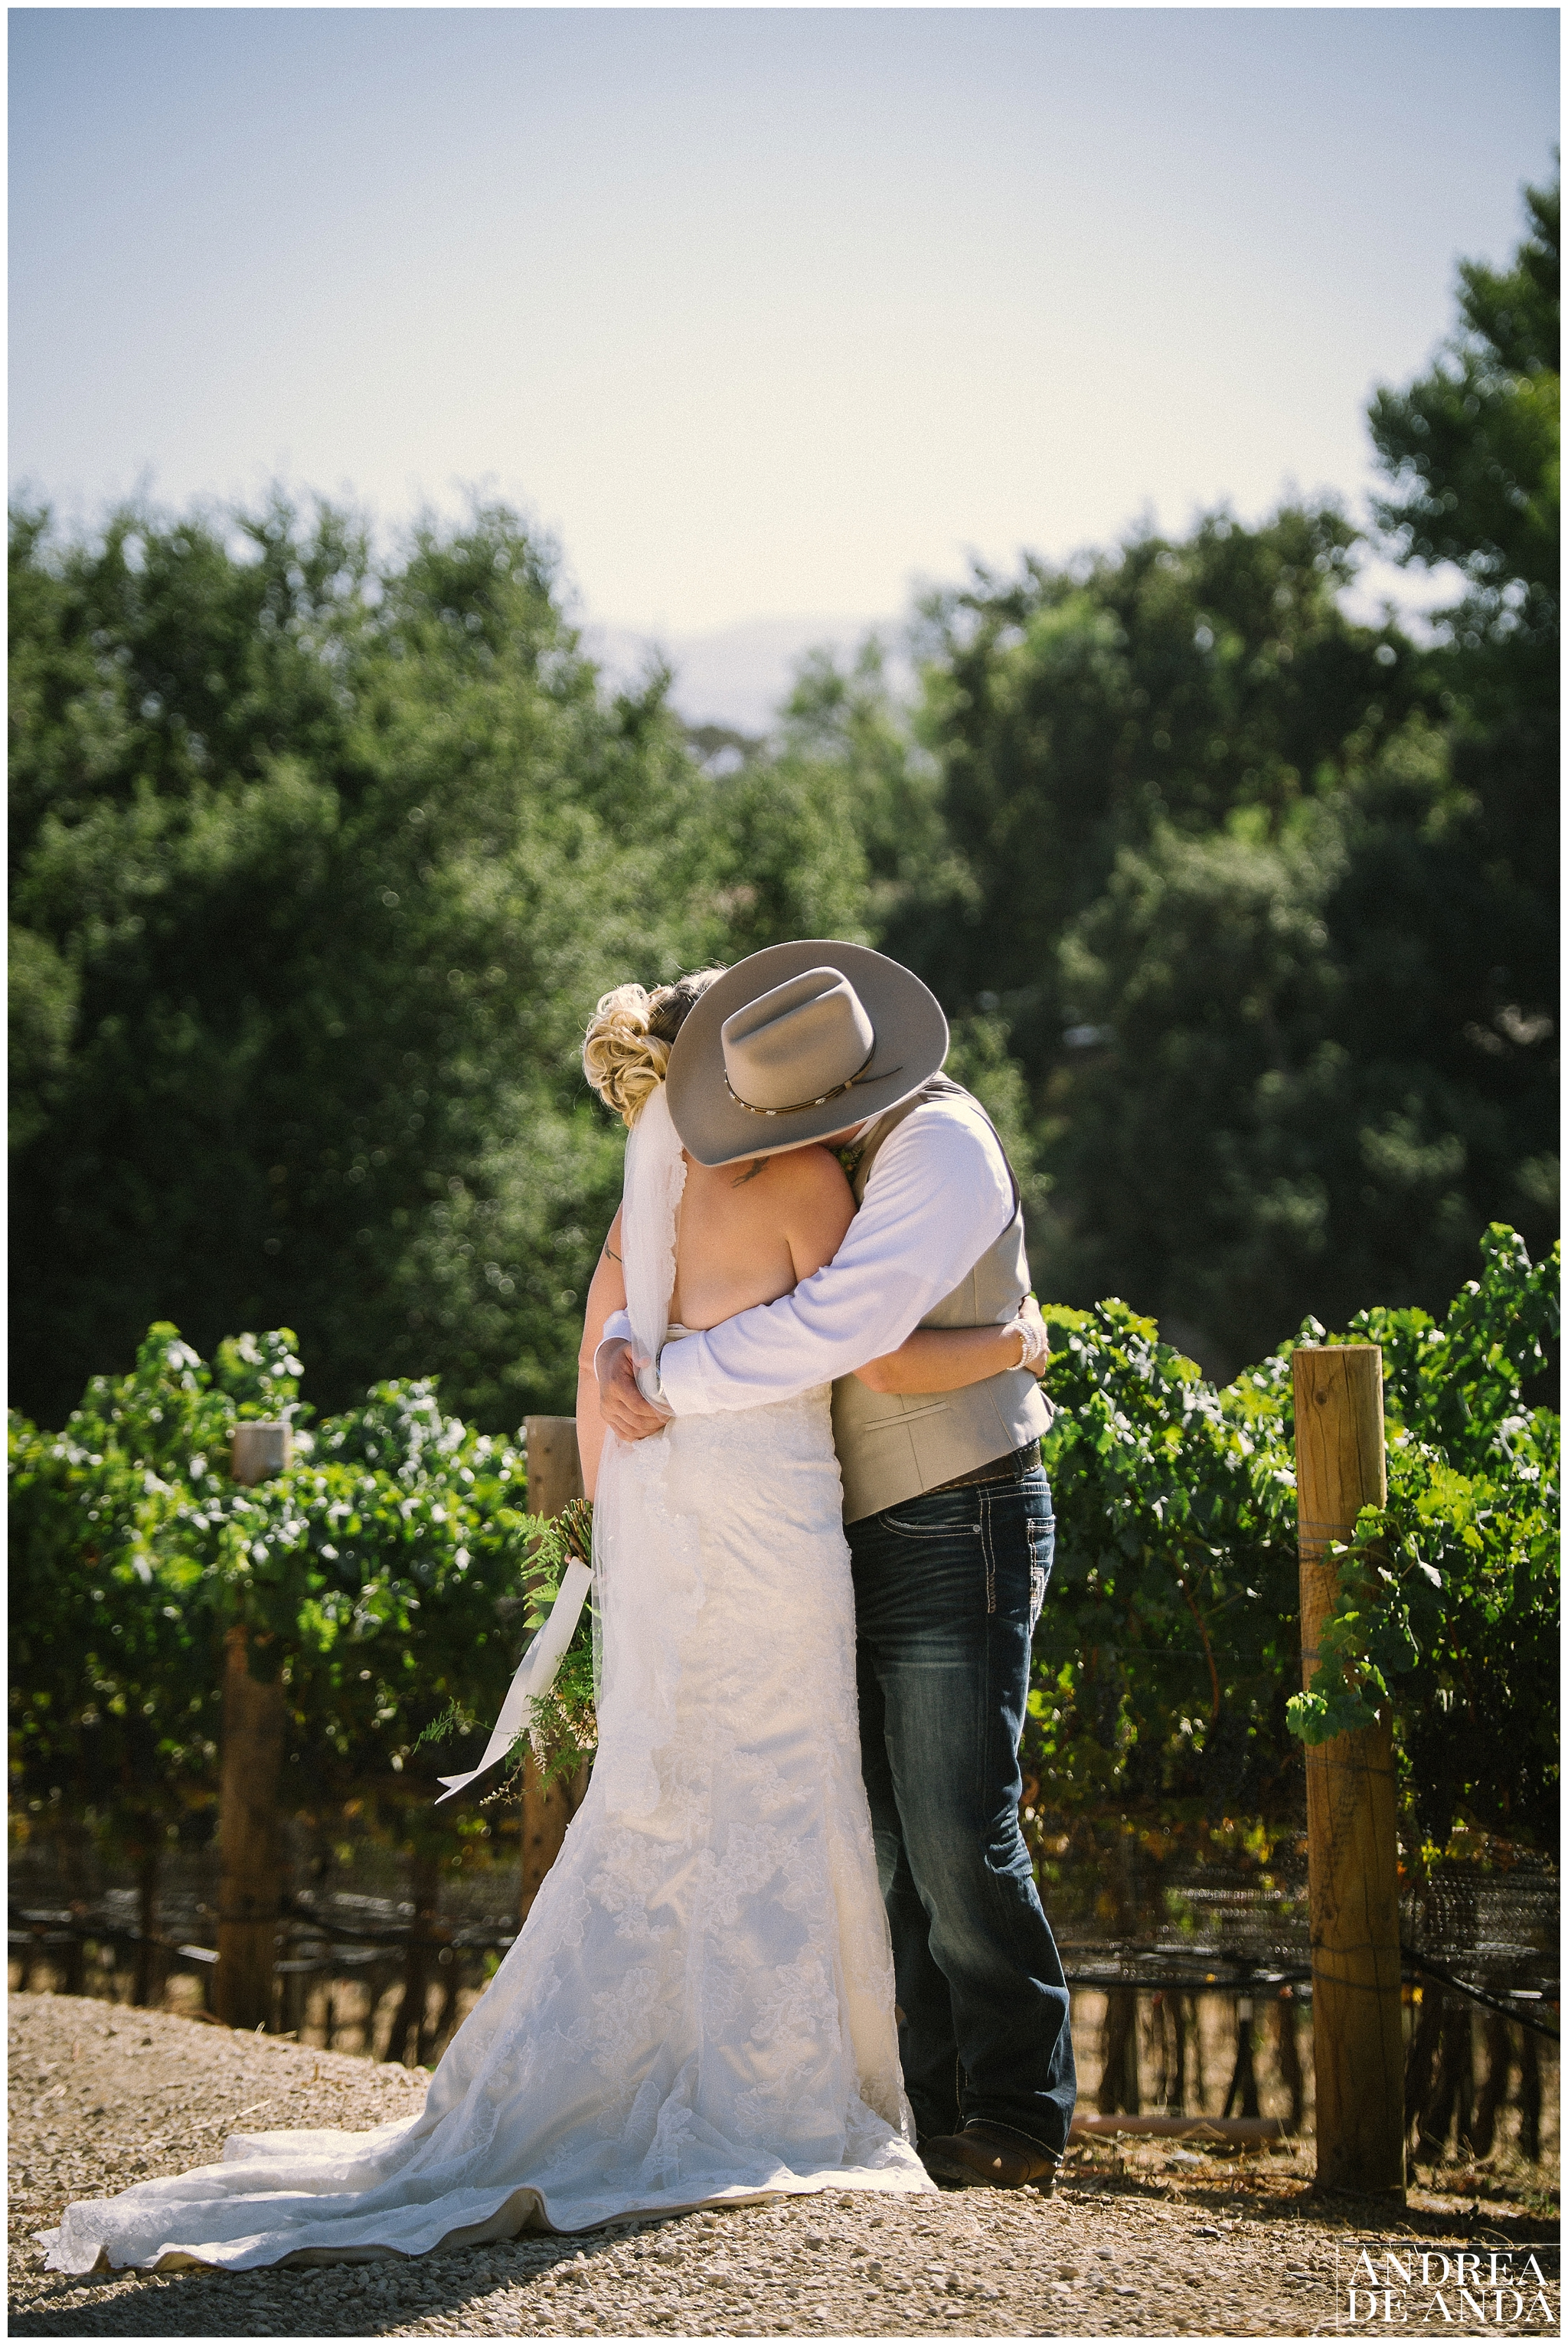 Santa Ynez Valley back yard wedding_Andrea de Anda Photography__0033.jpg